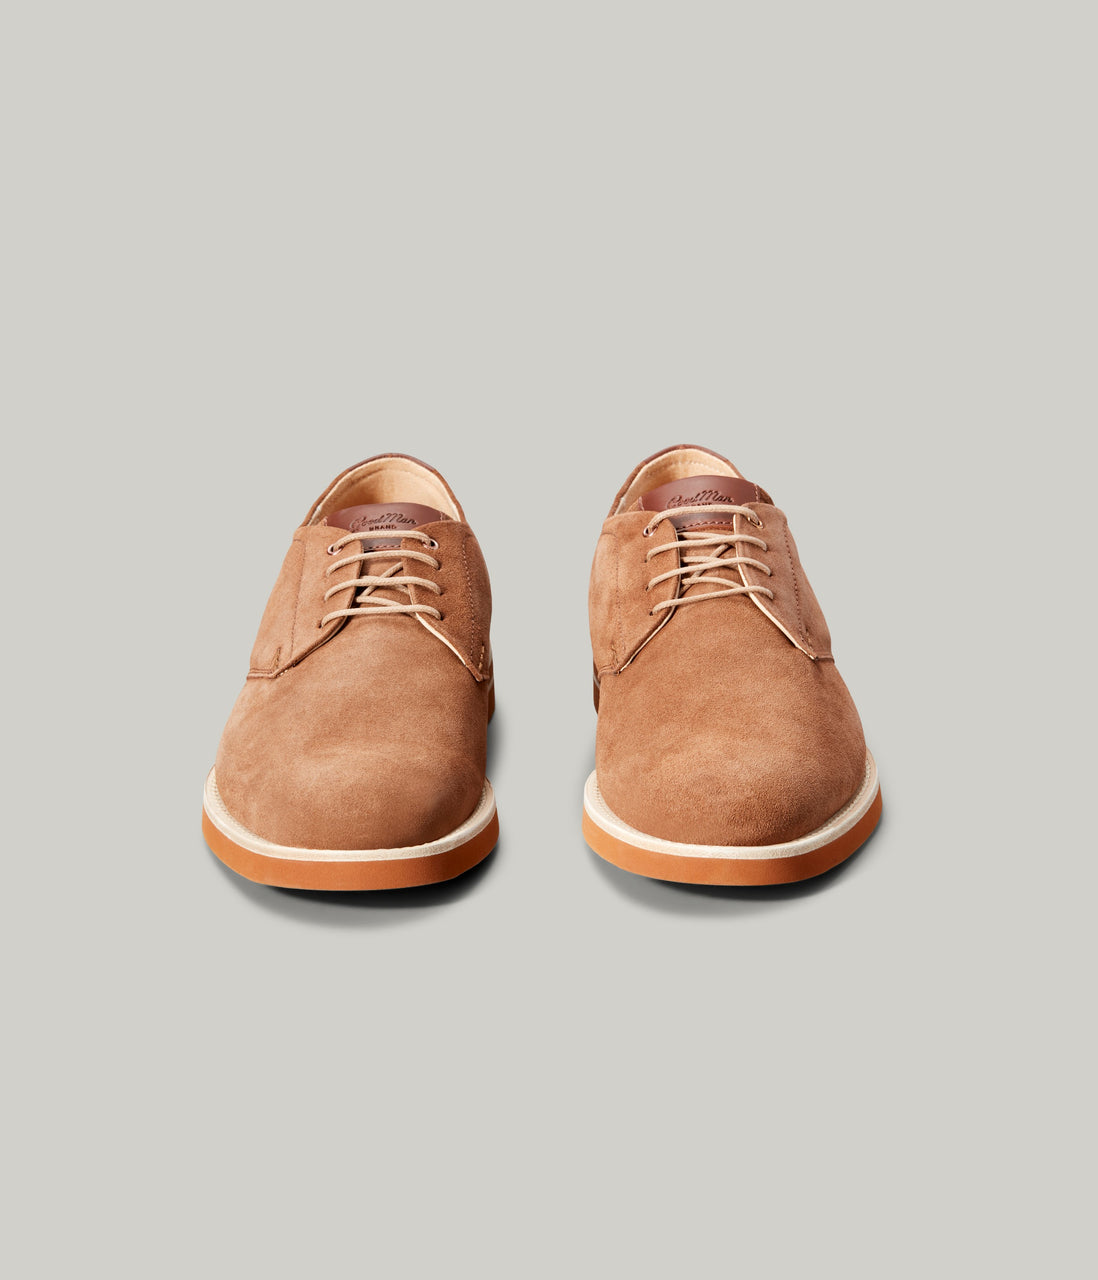 Modern Derby Shoe - Snuff - Good Man Brand - Modern Derby Shoe - Snuff